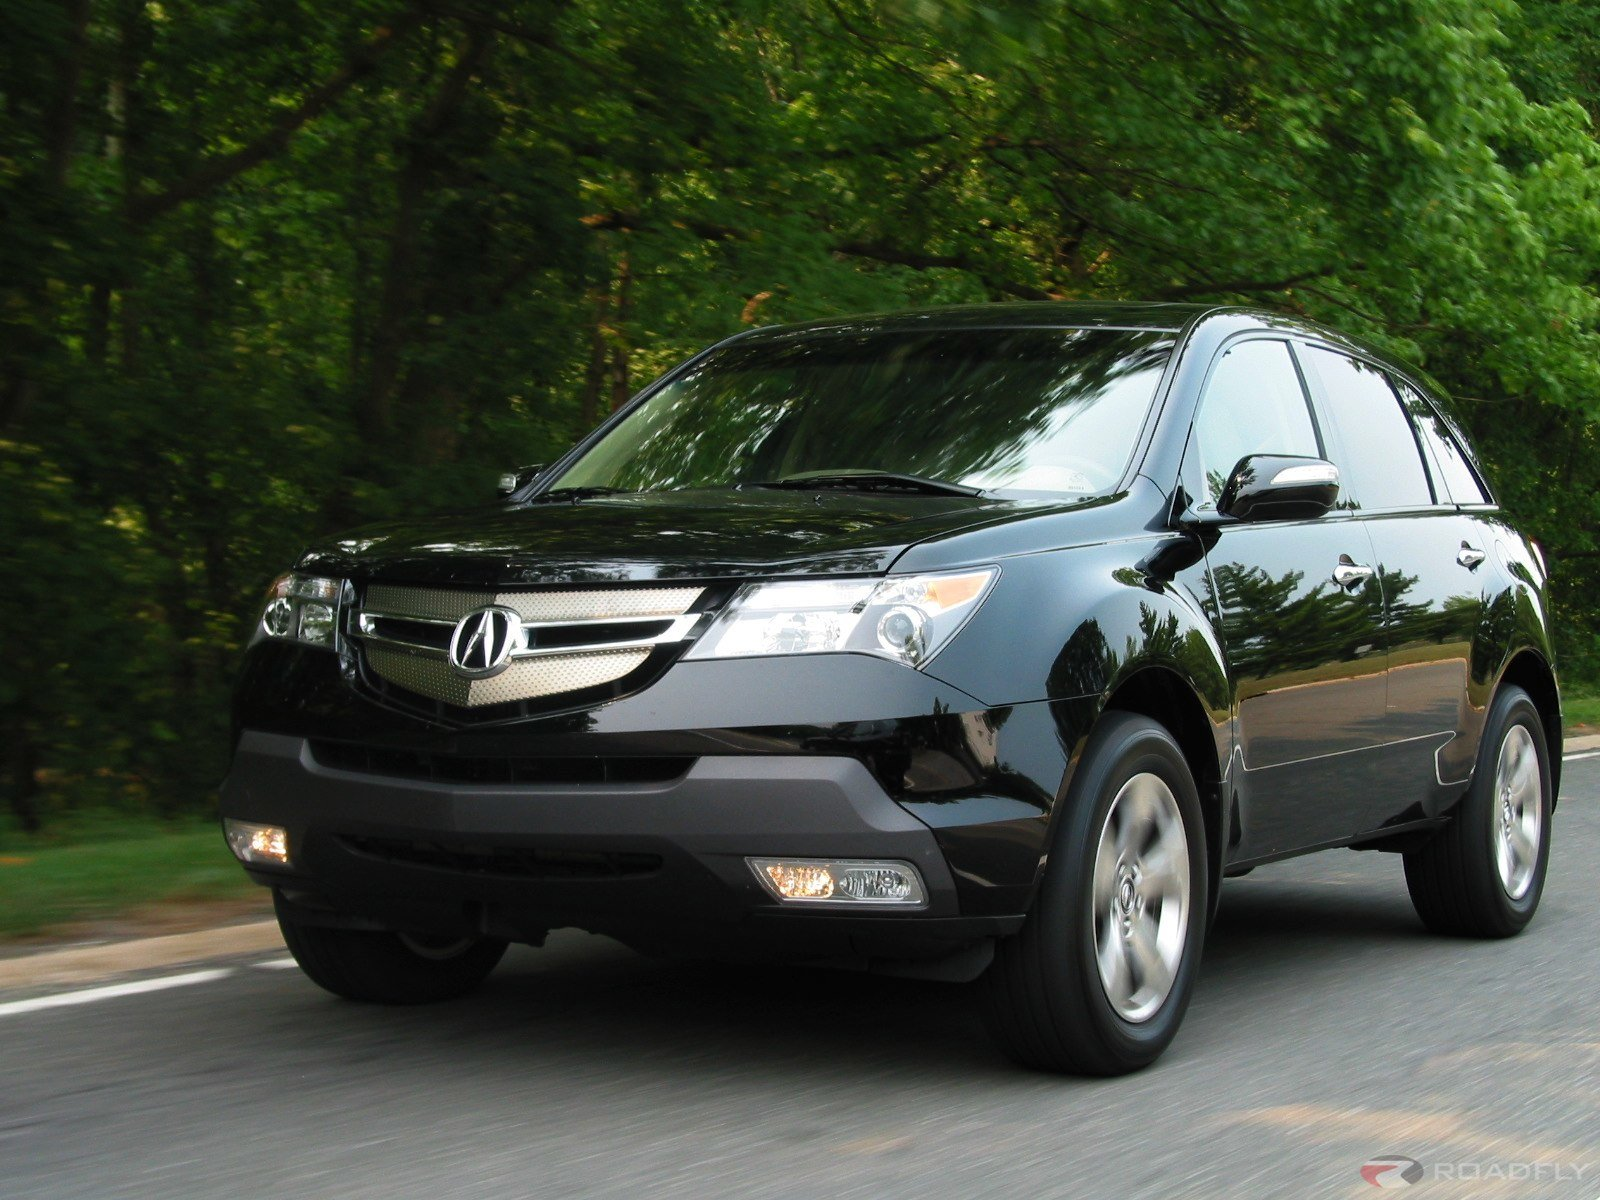 Latest Only Cars 2011 Acura Mdx Car Free Download